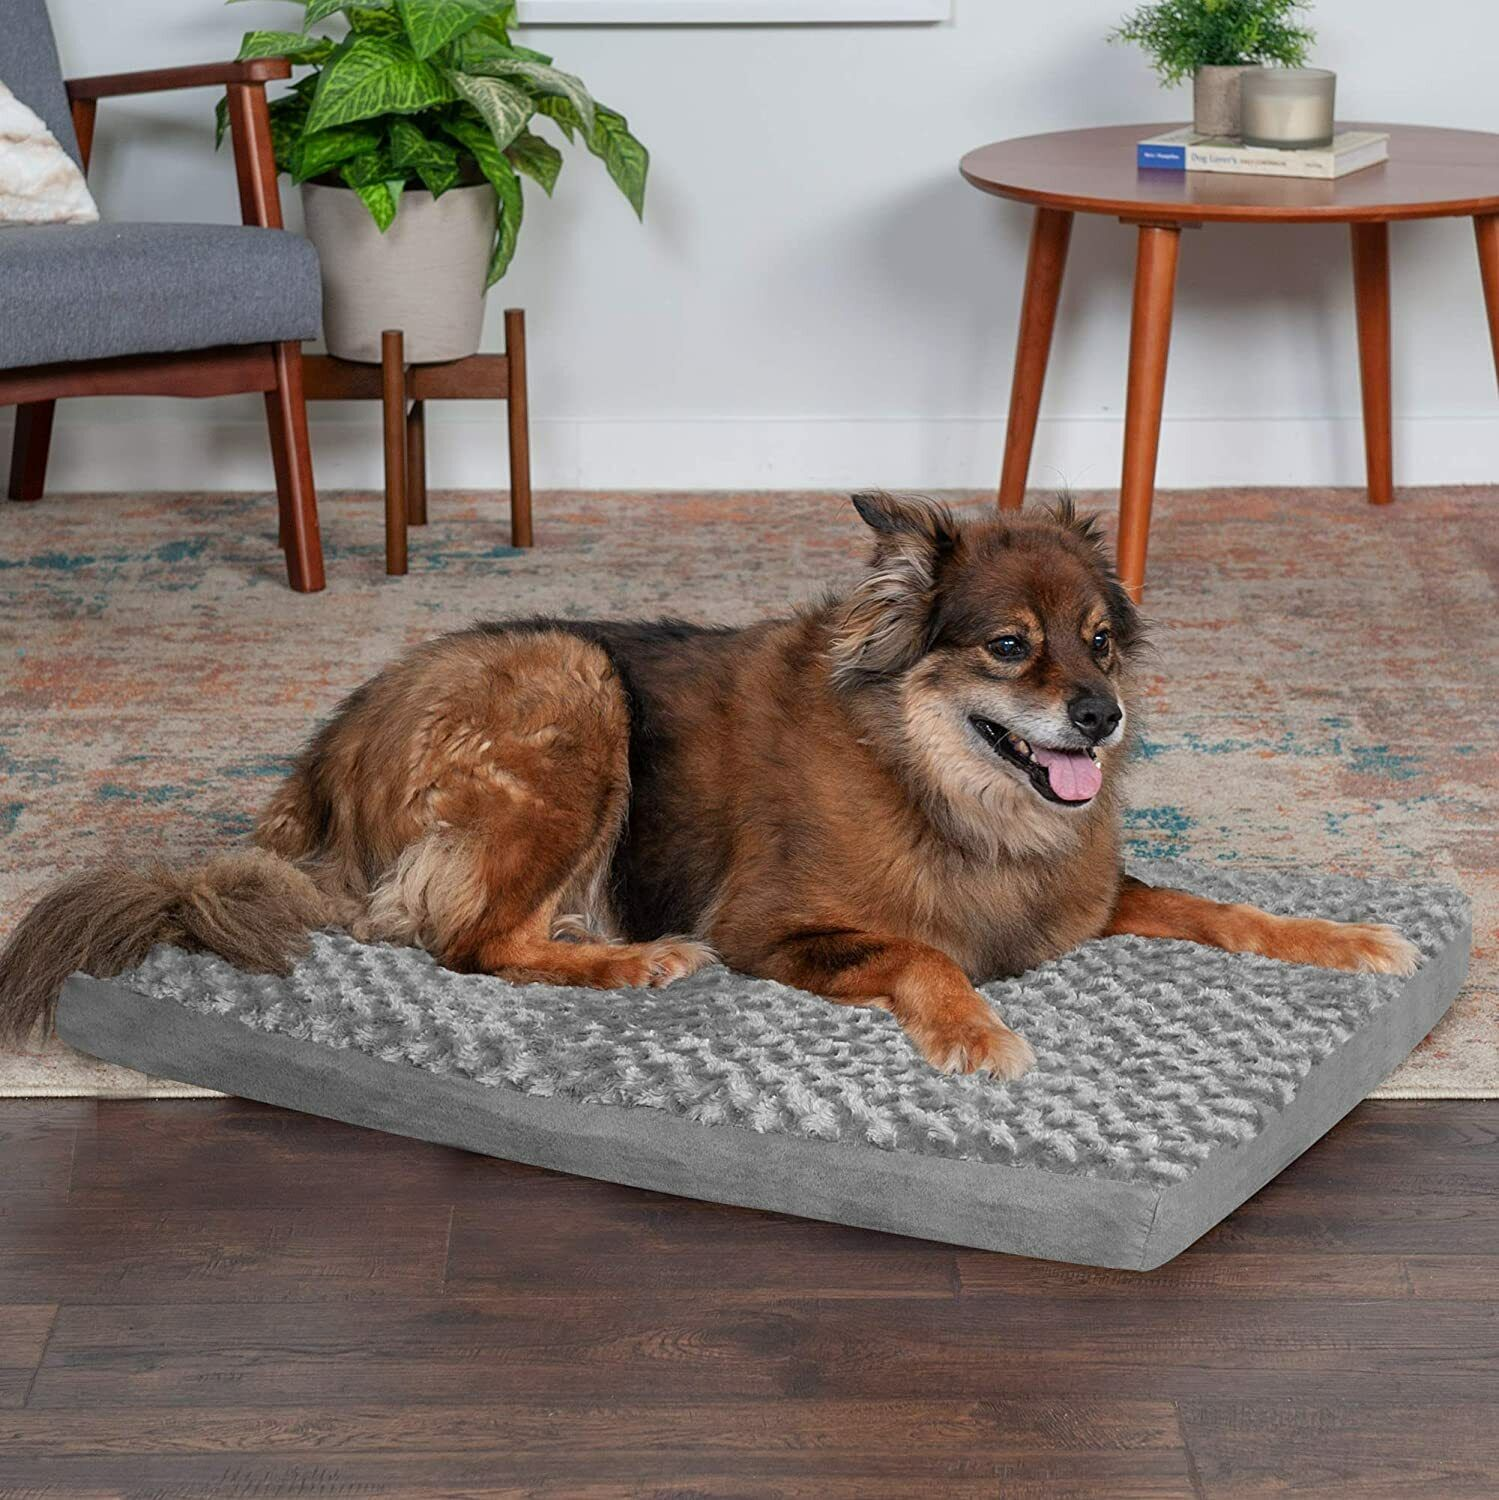 Furhaven Orthopedic Cooling Gel Memory Foam Pet Bed For Dogs, Cats - Gray - $28.95